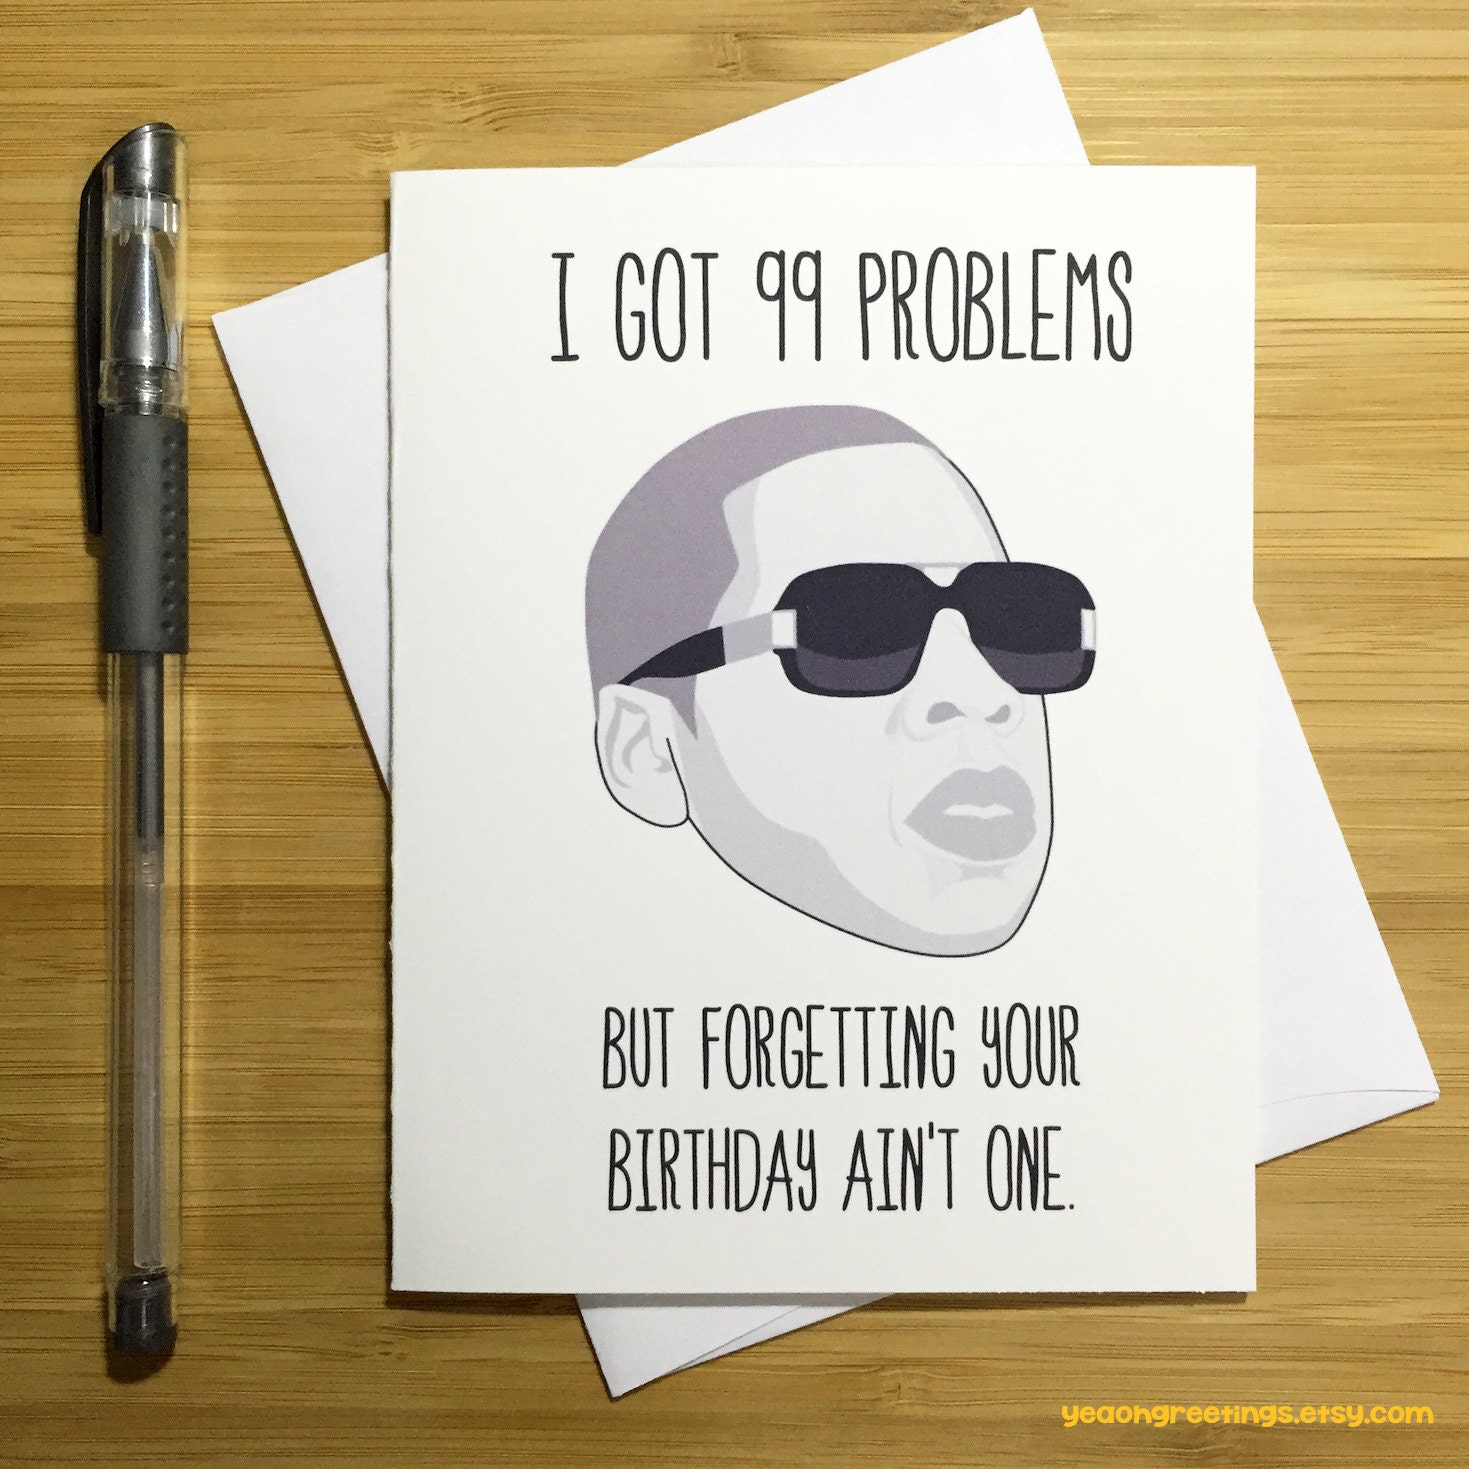 Jay-Z Birthday Card Funny Birthday Card Birthday By YeaOhGreetings